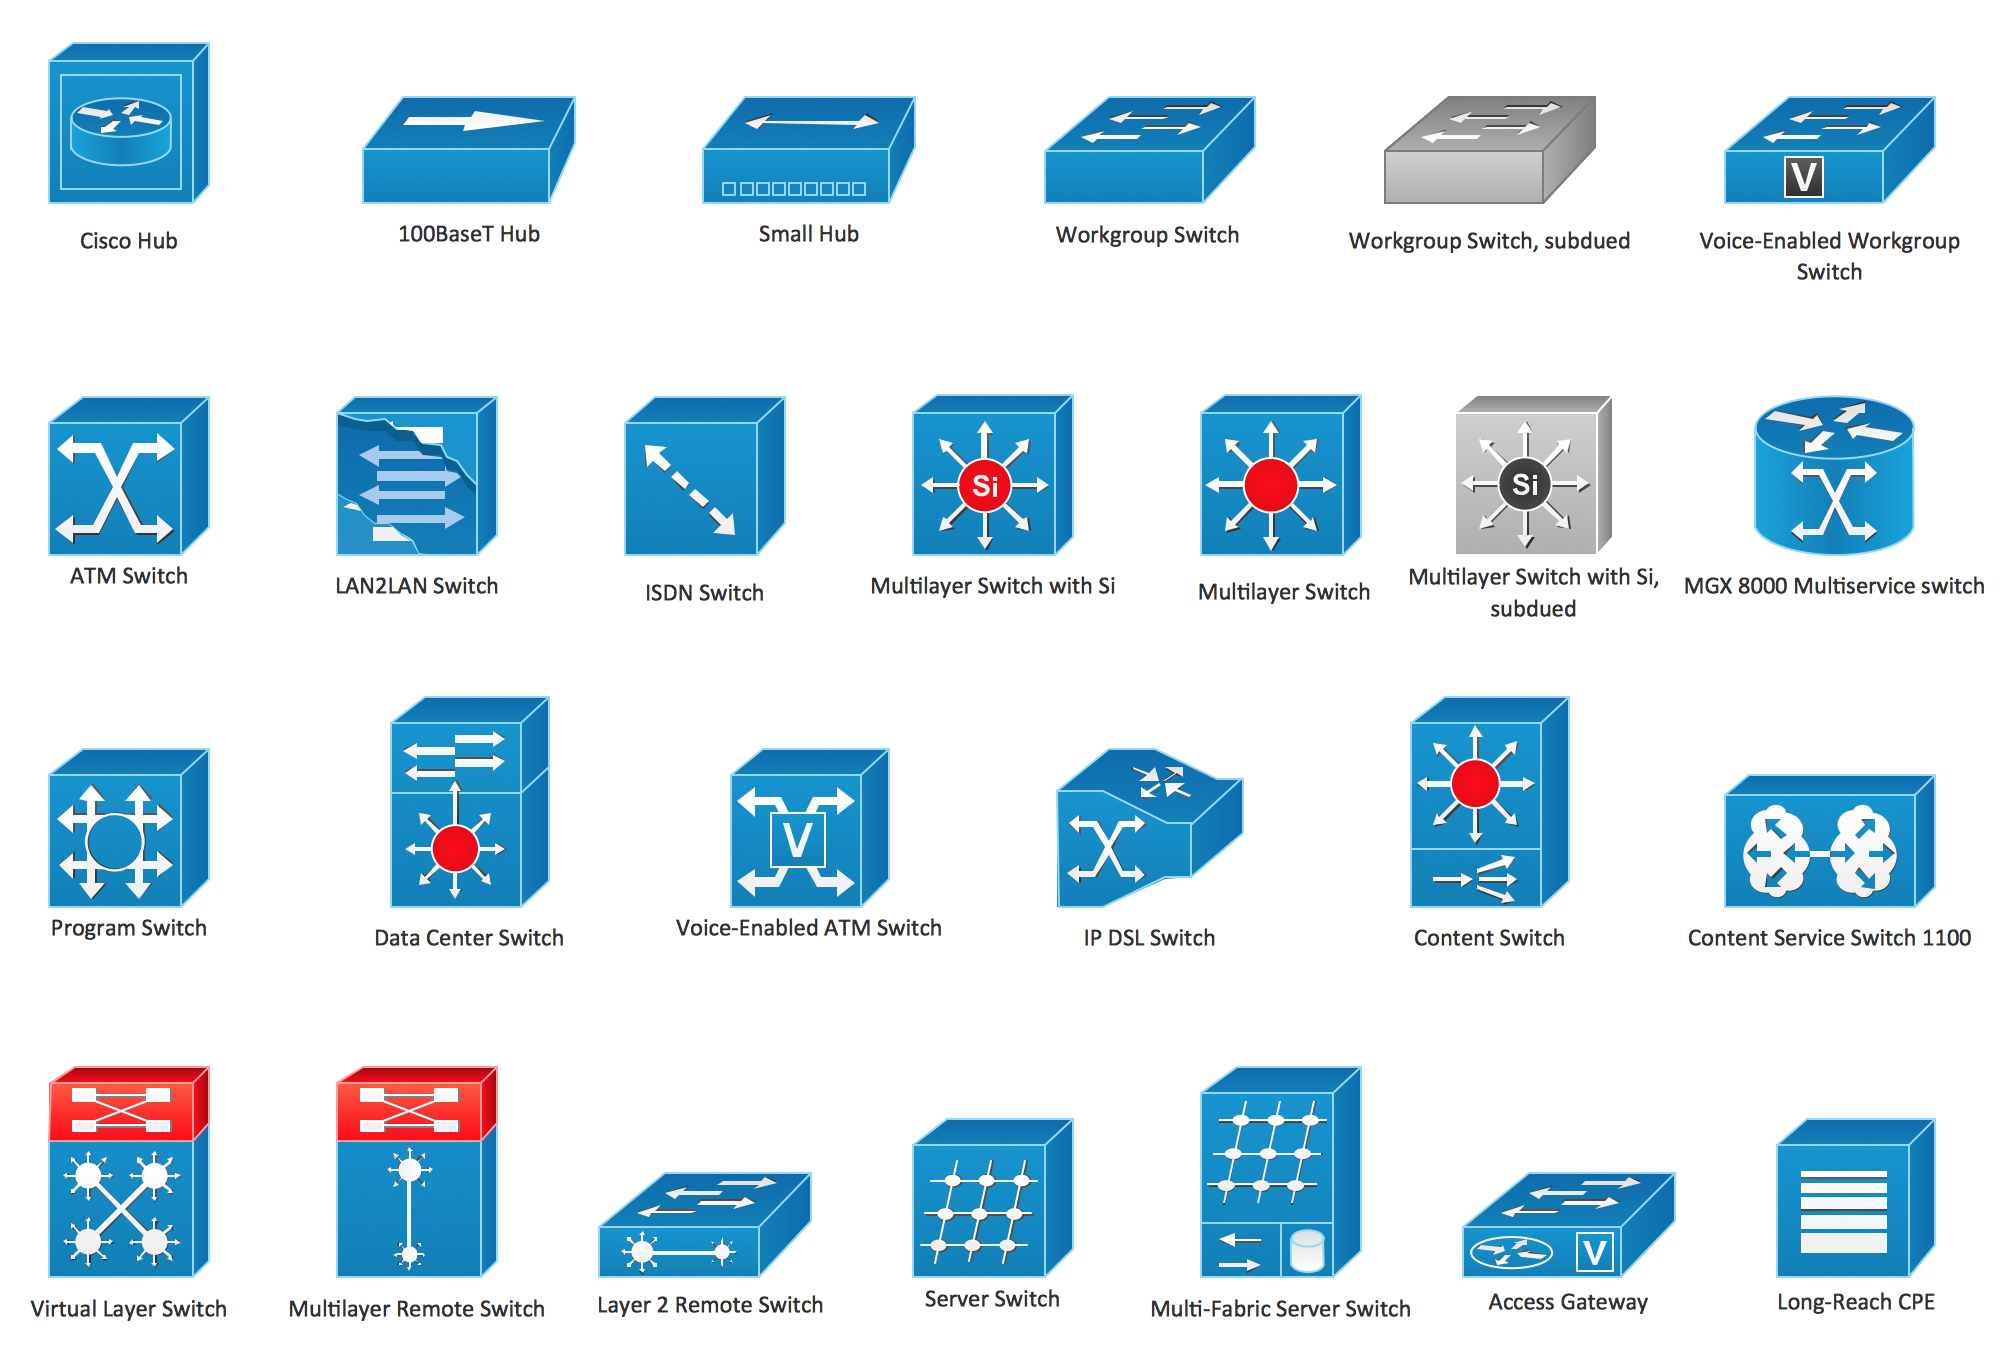 Cisco Switches and Hubs. Cisco icons, shapes, stencils and ... on process flow diagram symbols, block diagram symbols, jic electrical symbols, standard electrical symbols, circuit schematic symbols, excel schematic symbols, rf schematic symbols, electrical power distribution symbols, word schematic symbols, pdf schematic symbols, automotive electrical symbols, orcad schematic symbols, visio wiring diagram, powerpoint schematic symbols, electrical schematic symbols,